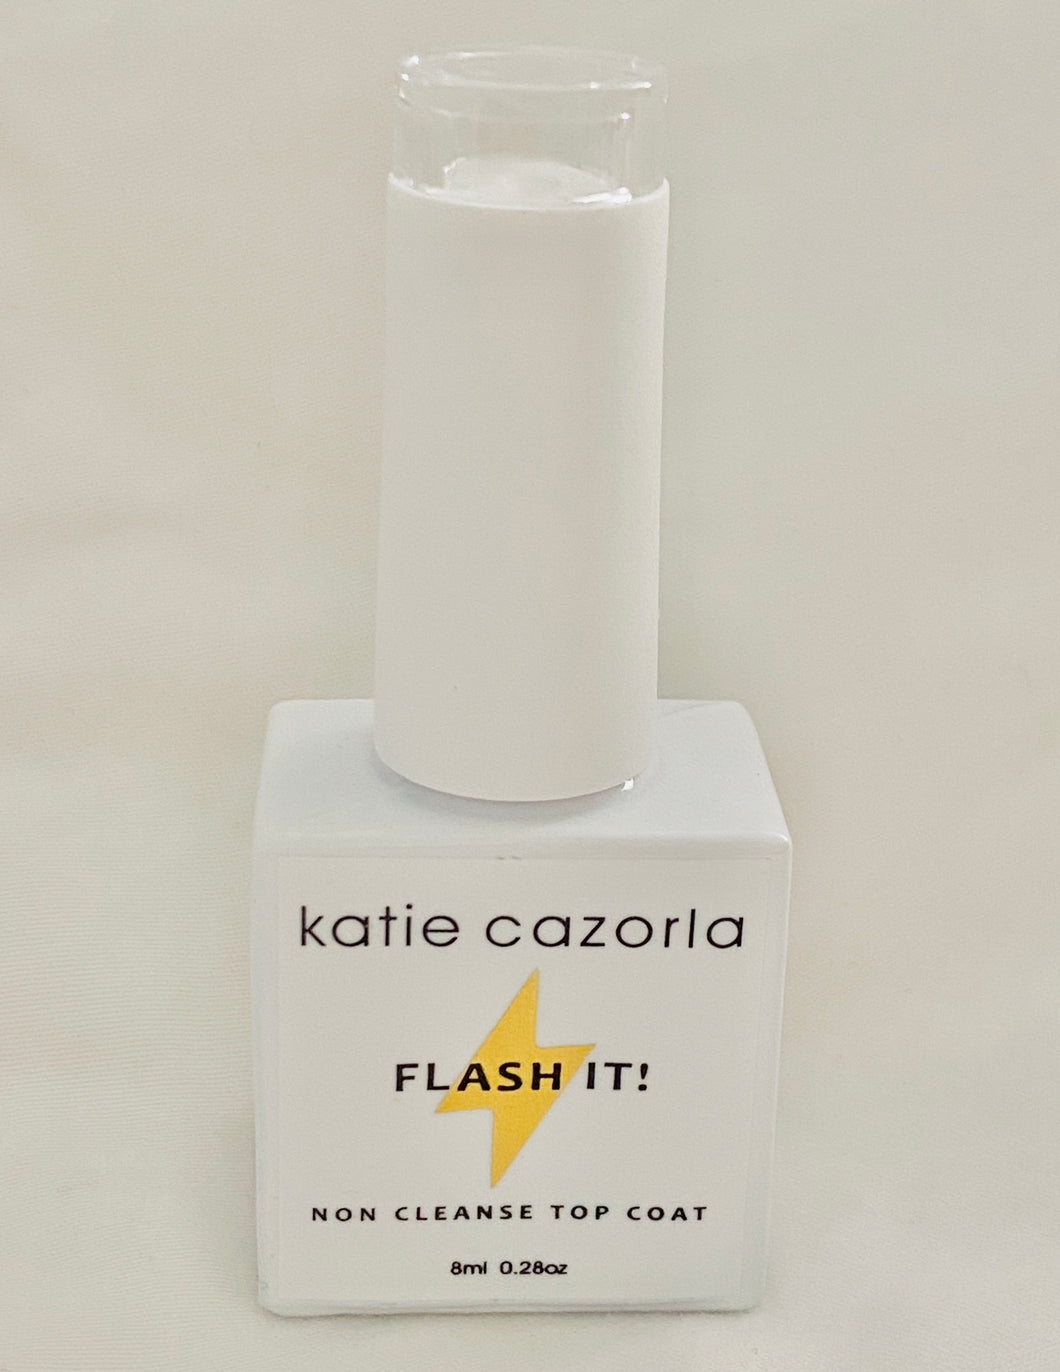 Flash It! Non Cleanse Top Coat